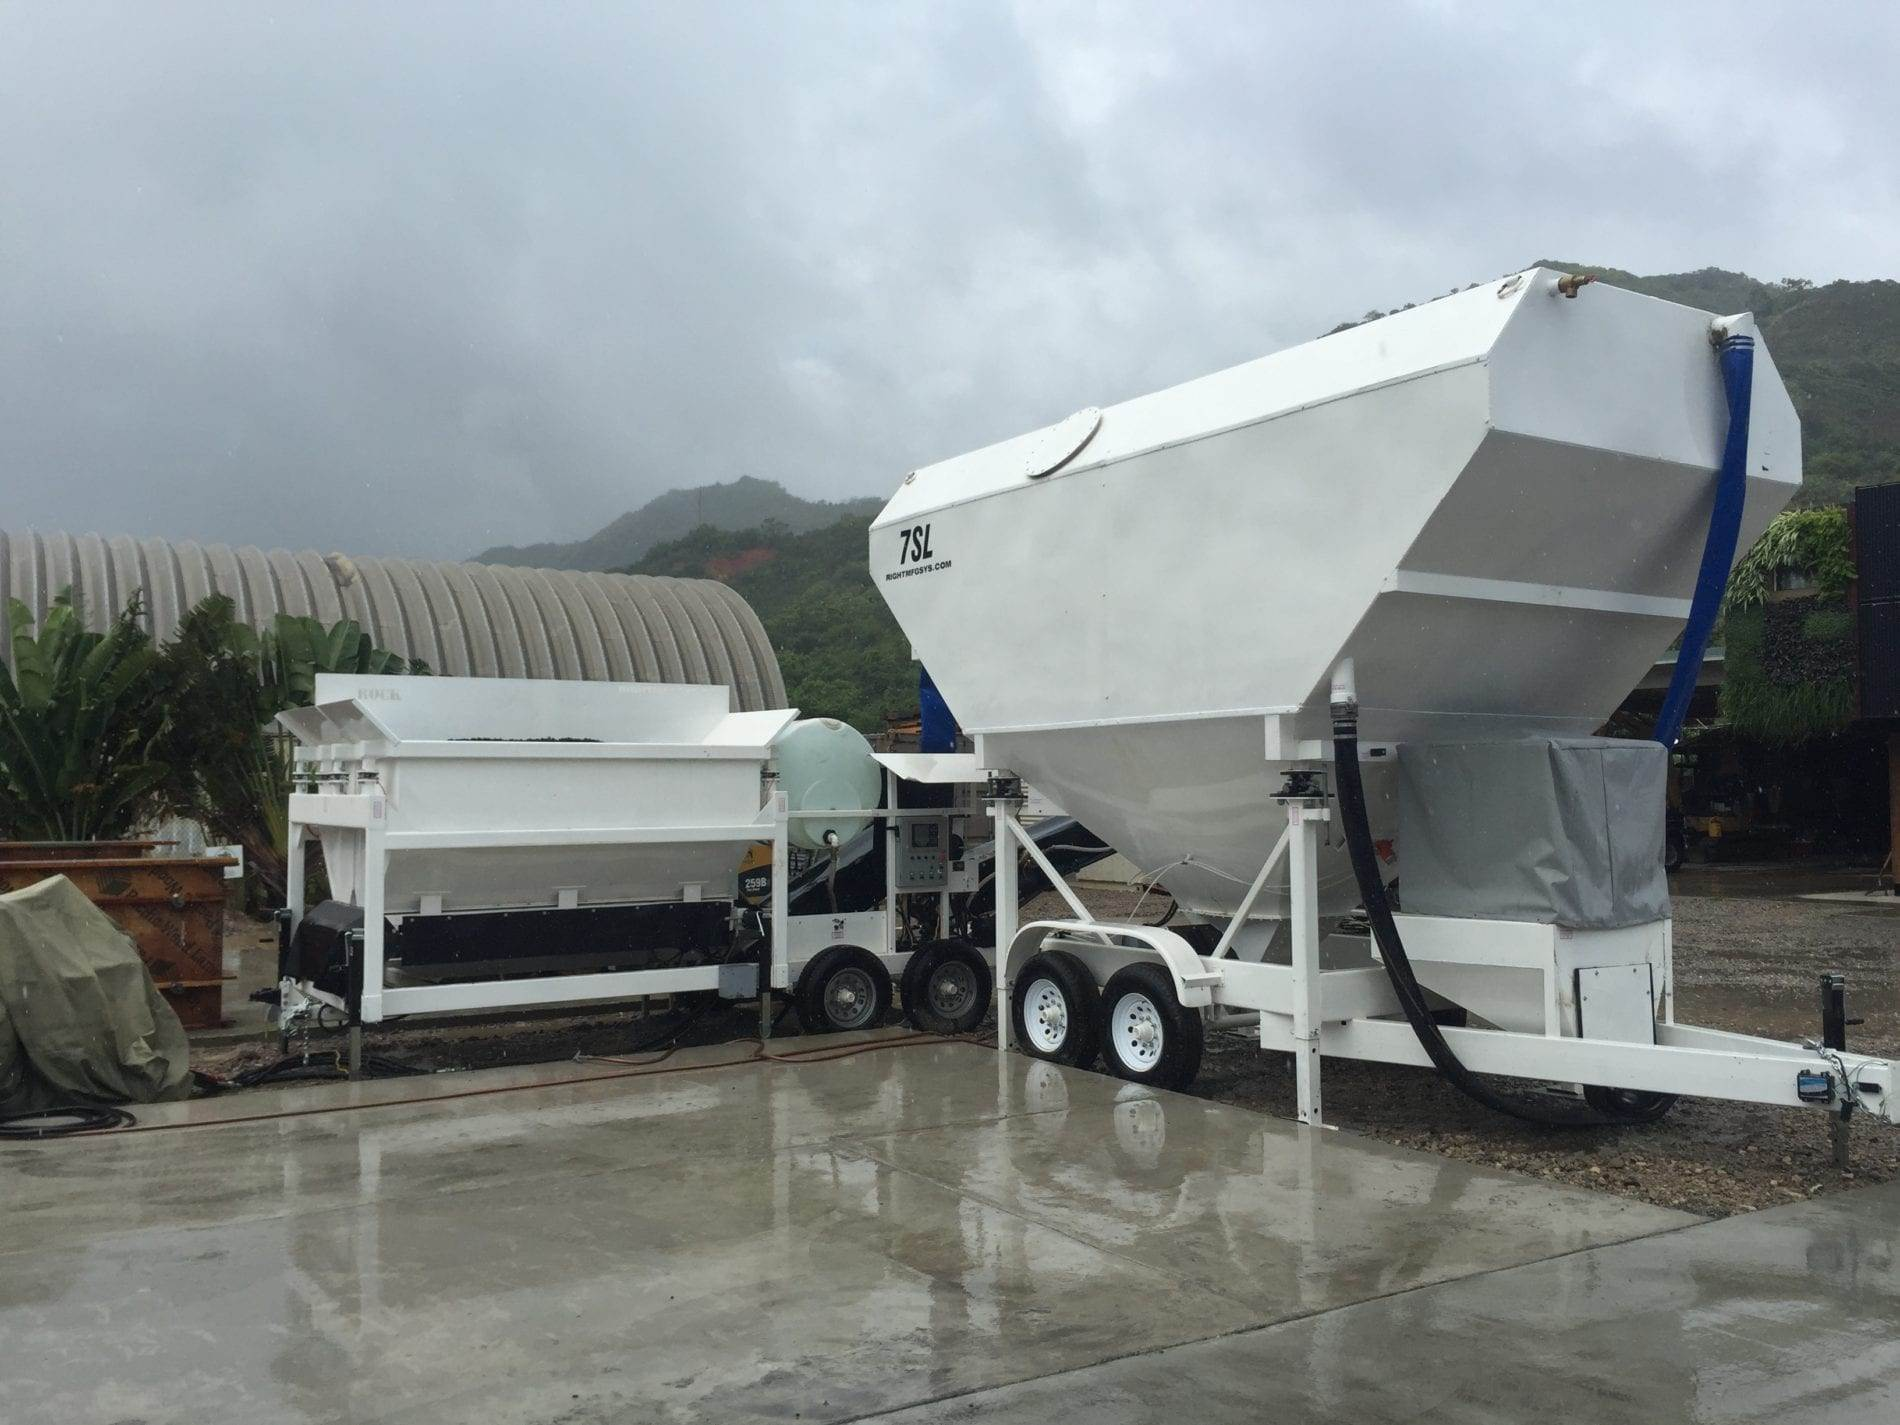 Portable Concrete Batching Plant 5+ Cubic Yards Automated Mix Right 2CL-5-2 & Portable Cement Silo 35 Ton 7SL-80 in Hawaii by Right Manufacturing Systems Inc.